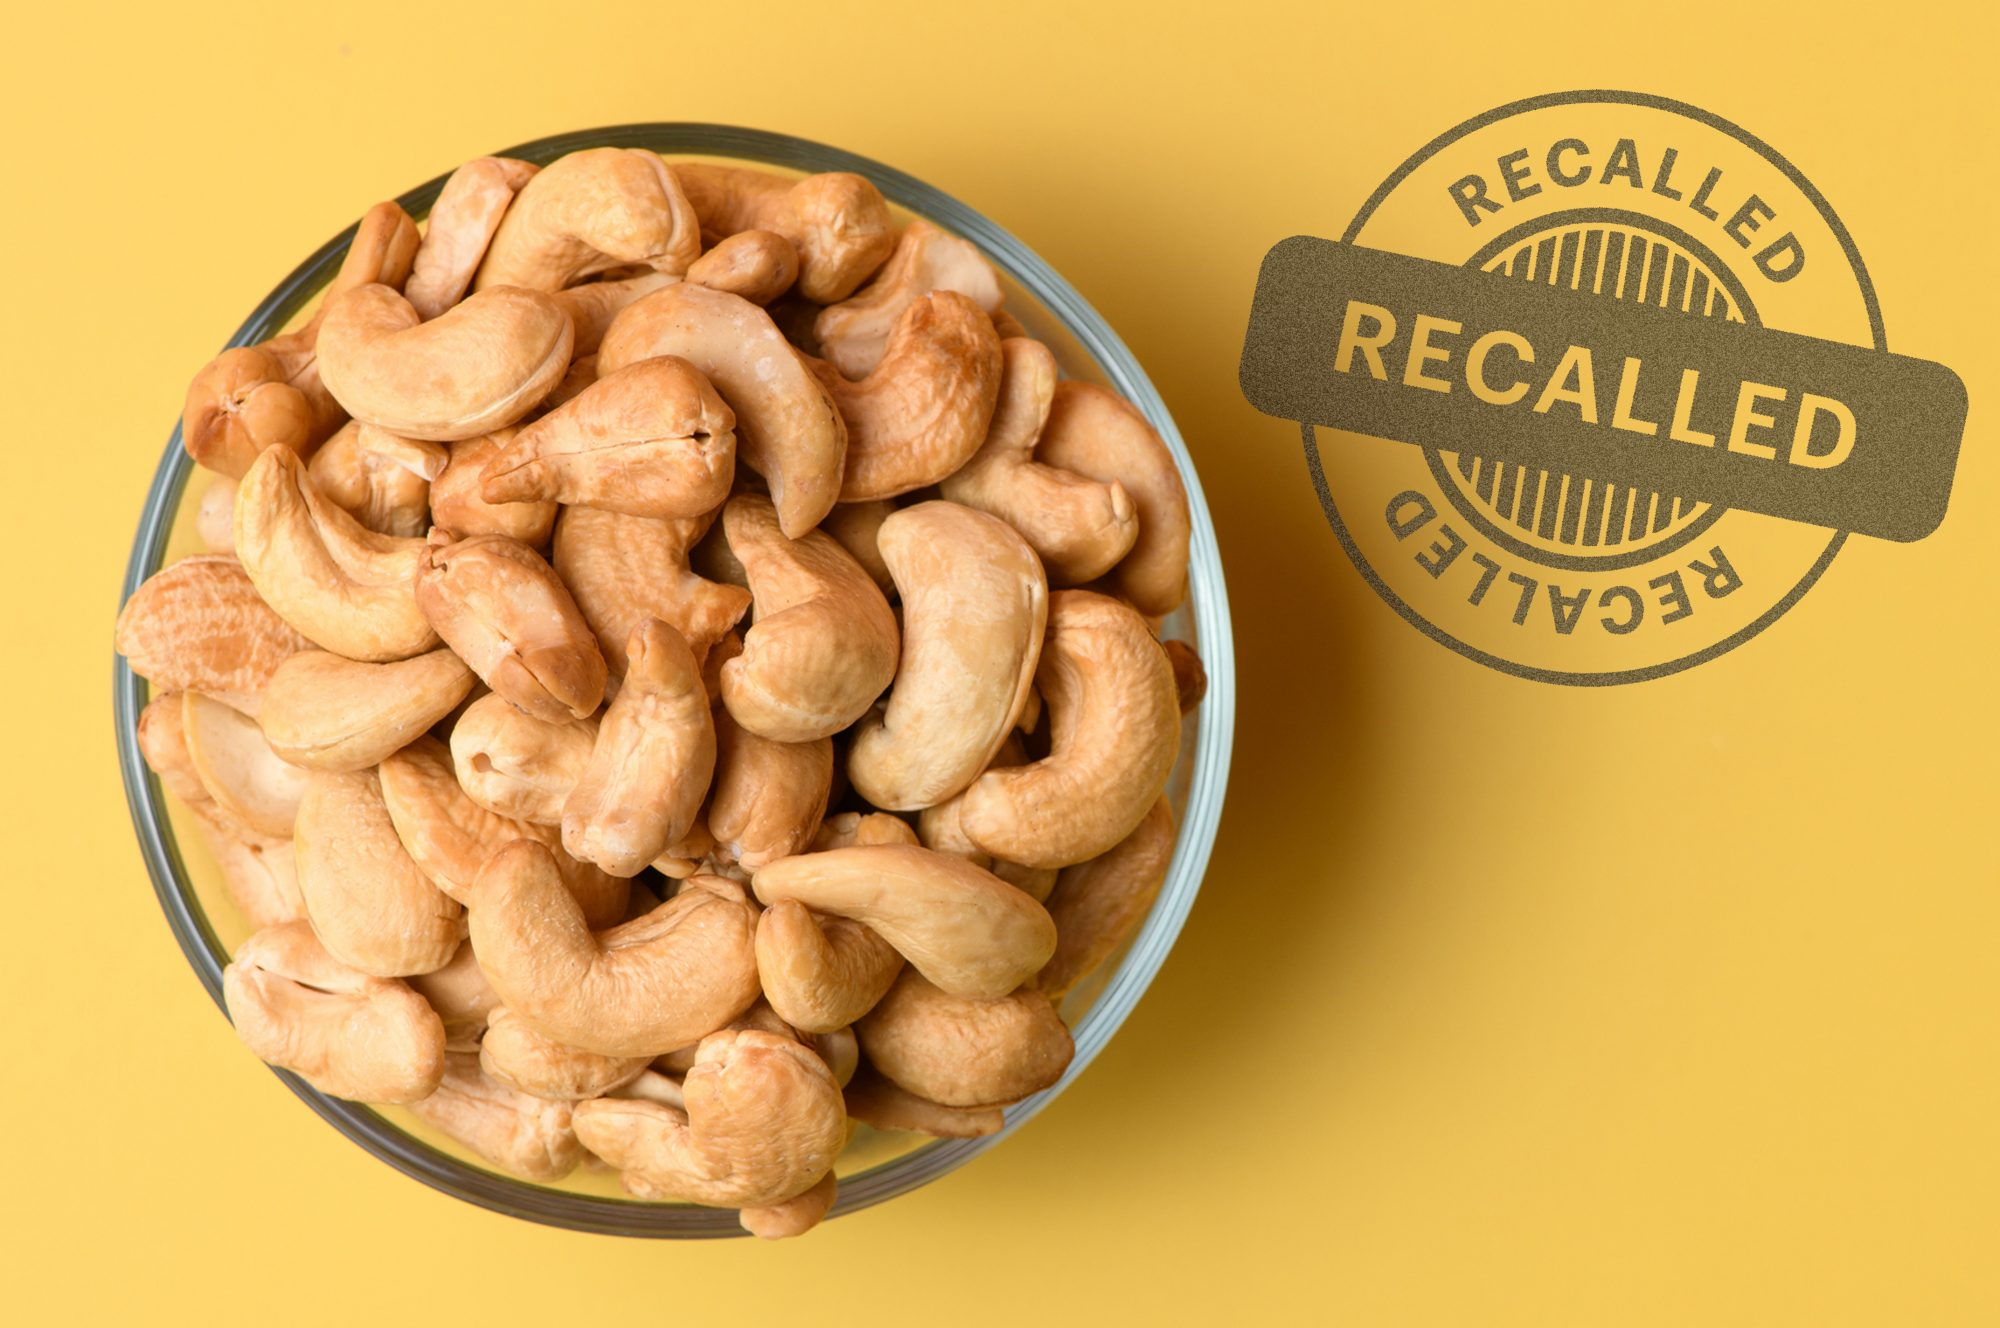 An image of cashews on a yellow background with a recall sticker on it.